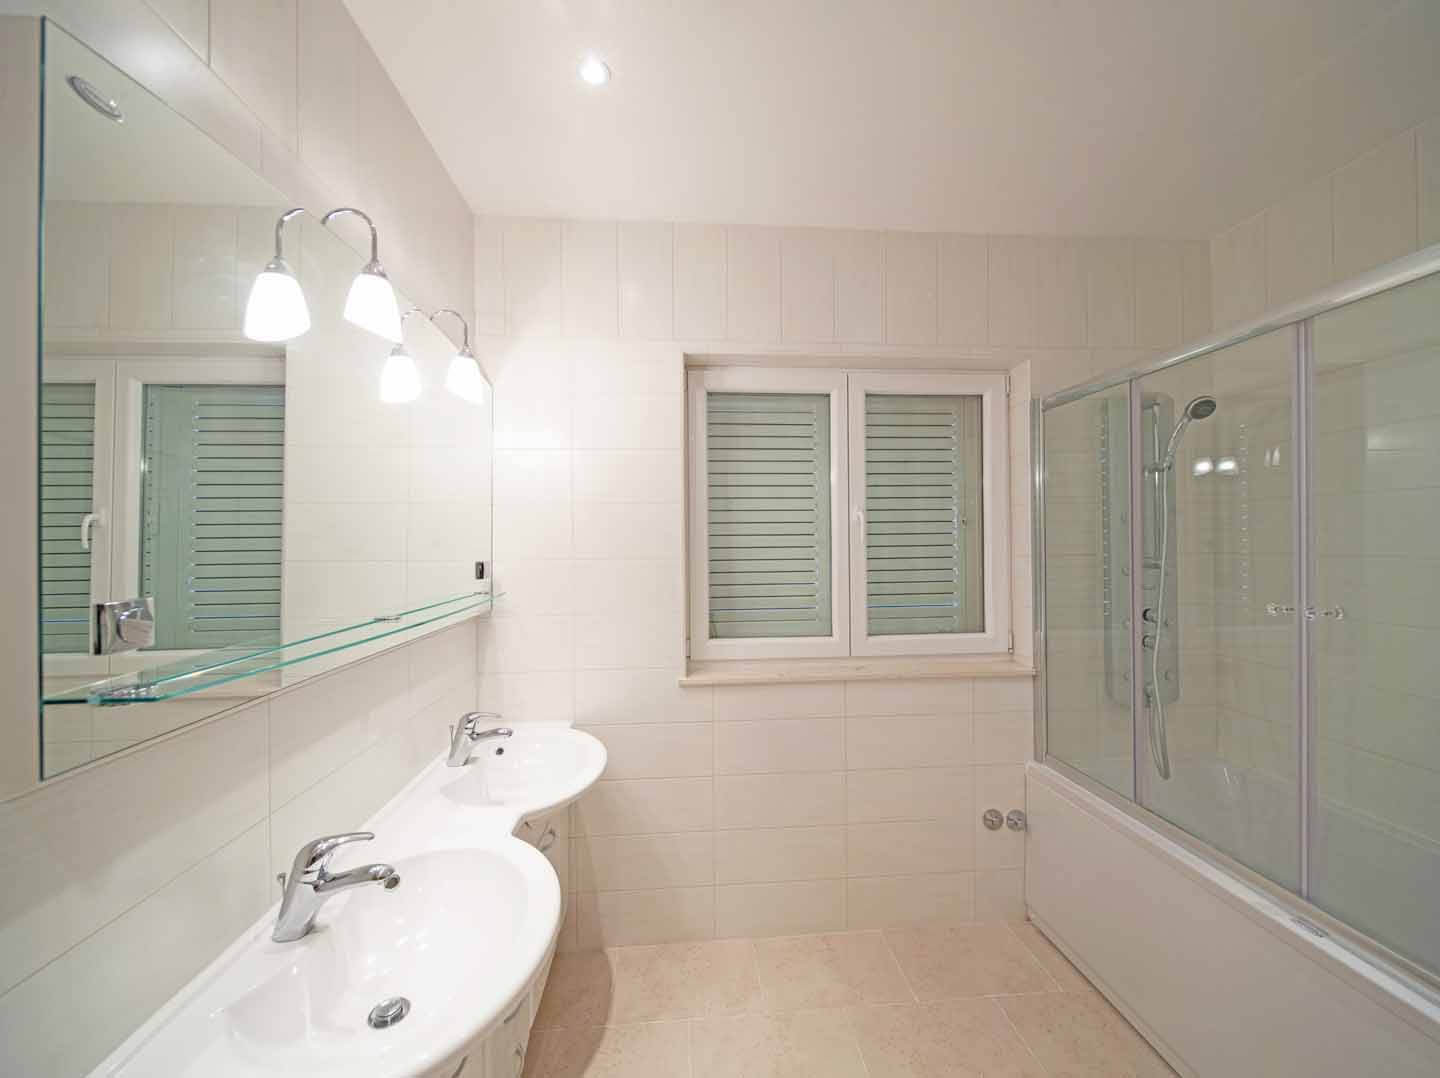 Bathroom with bath tub and shower attachment